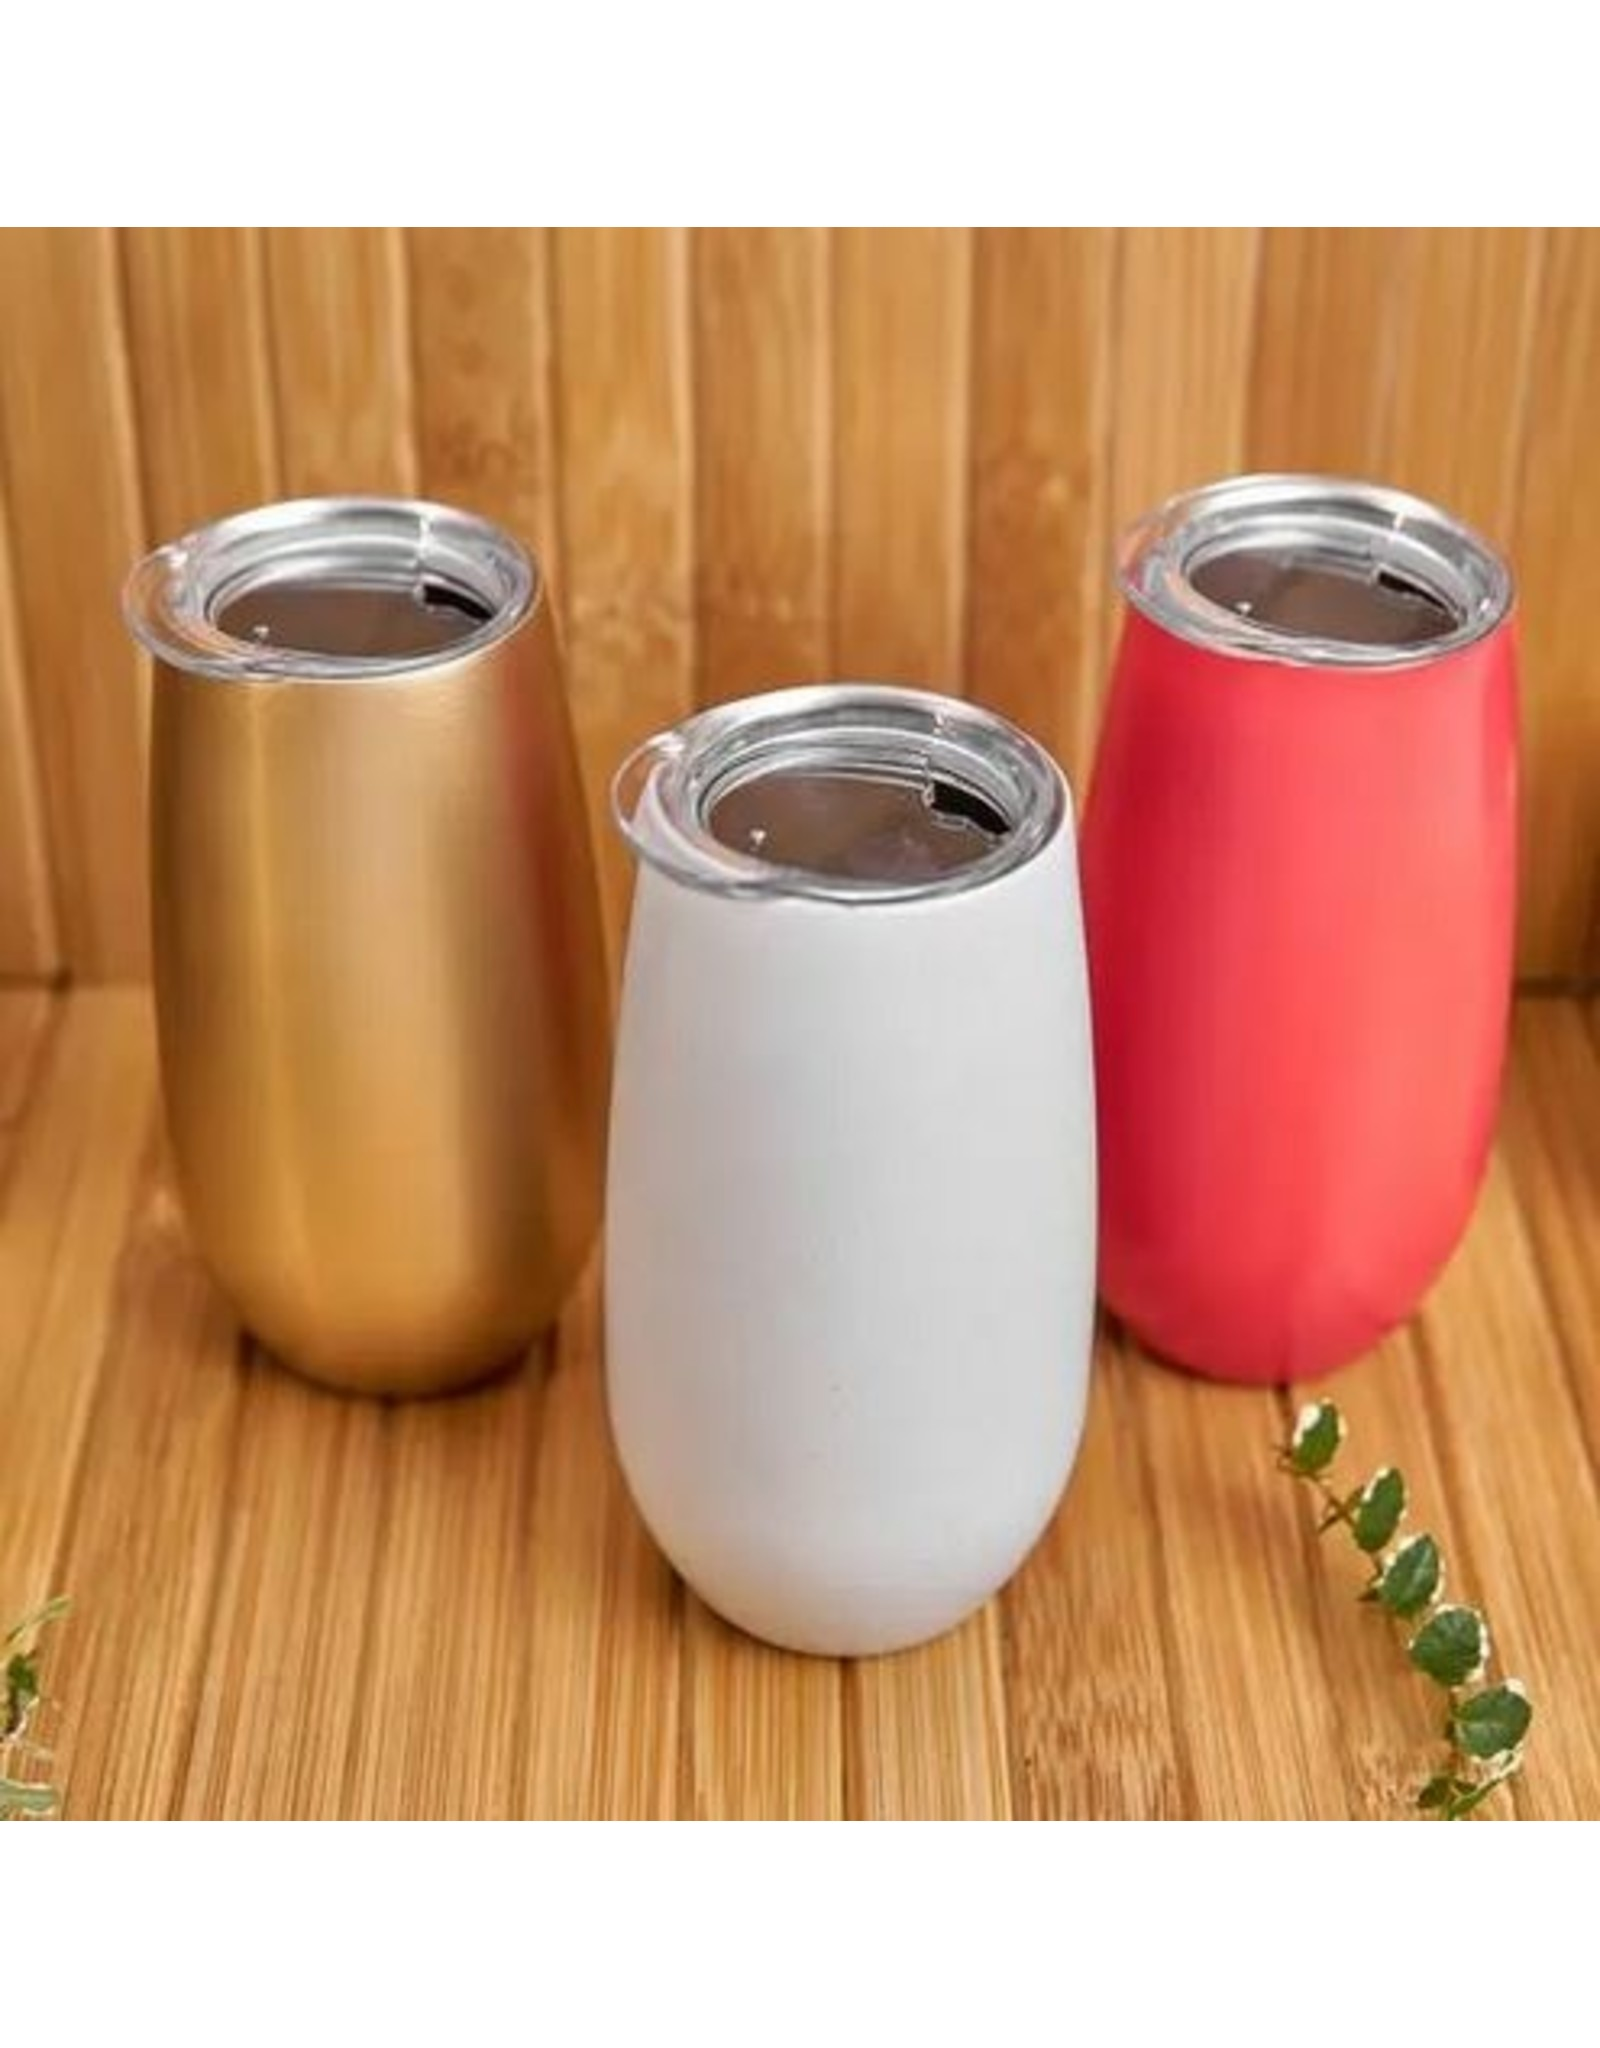 Stainless Steel Champagne Glasses